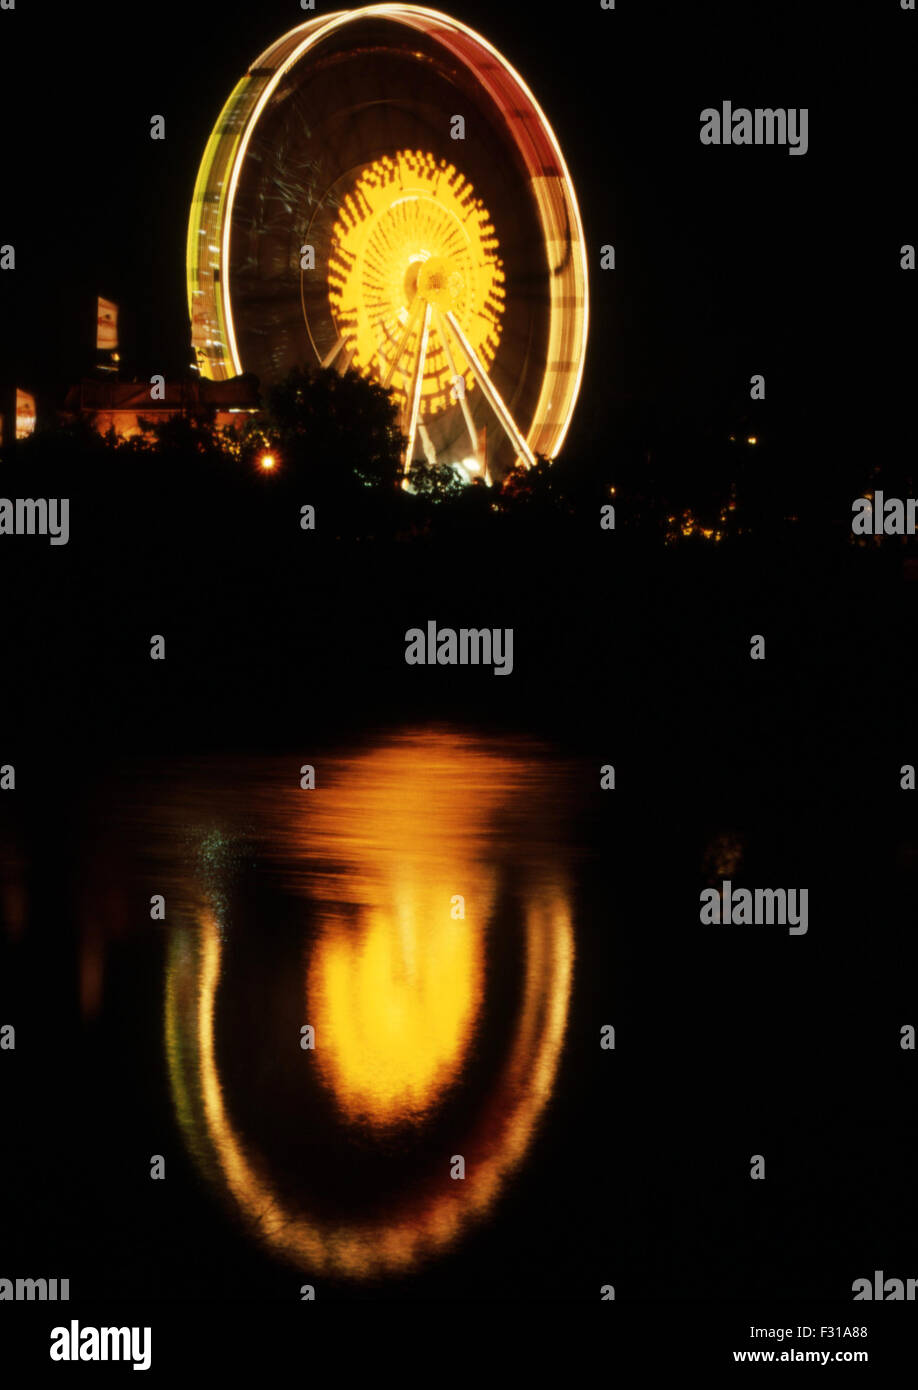 Ferris wheel and its reflection at night in the water of the Donau (Blue Danube) during the Volksfest (festival) - Stock Image